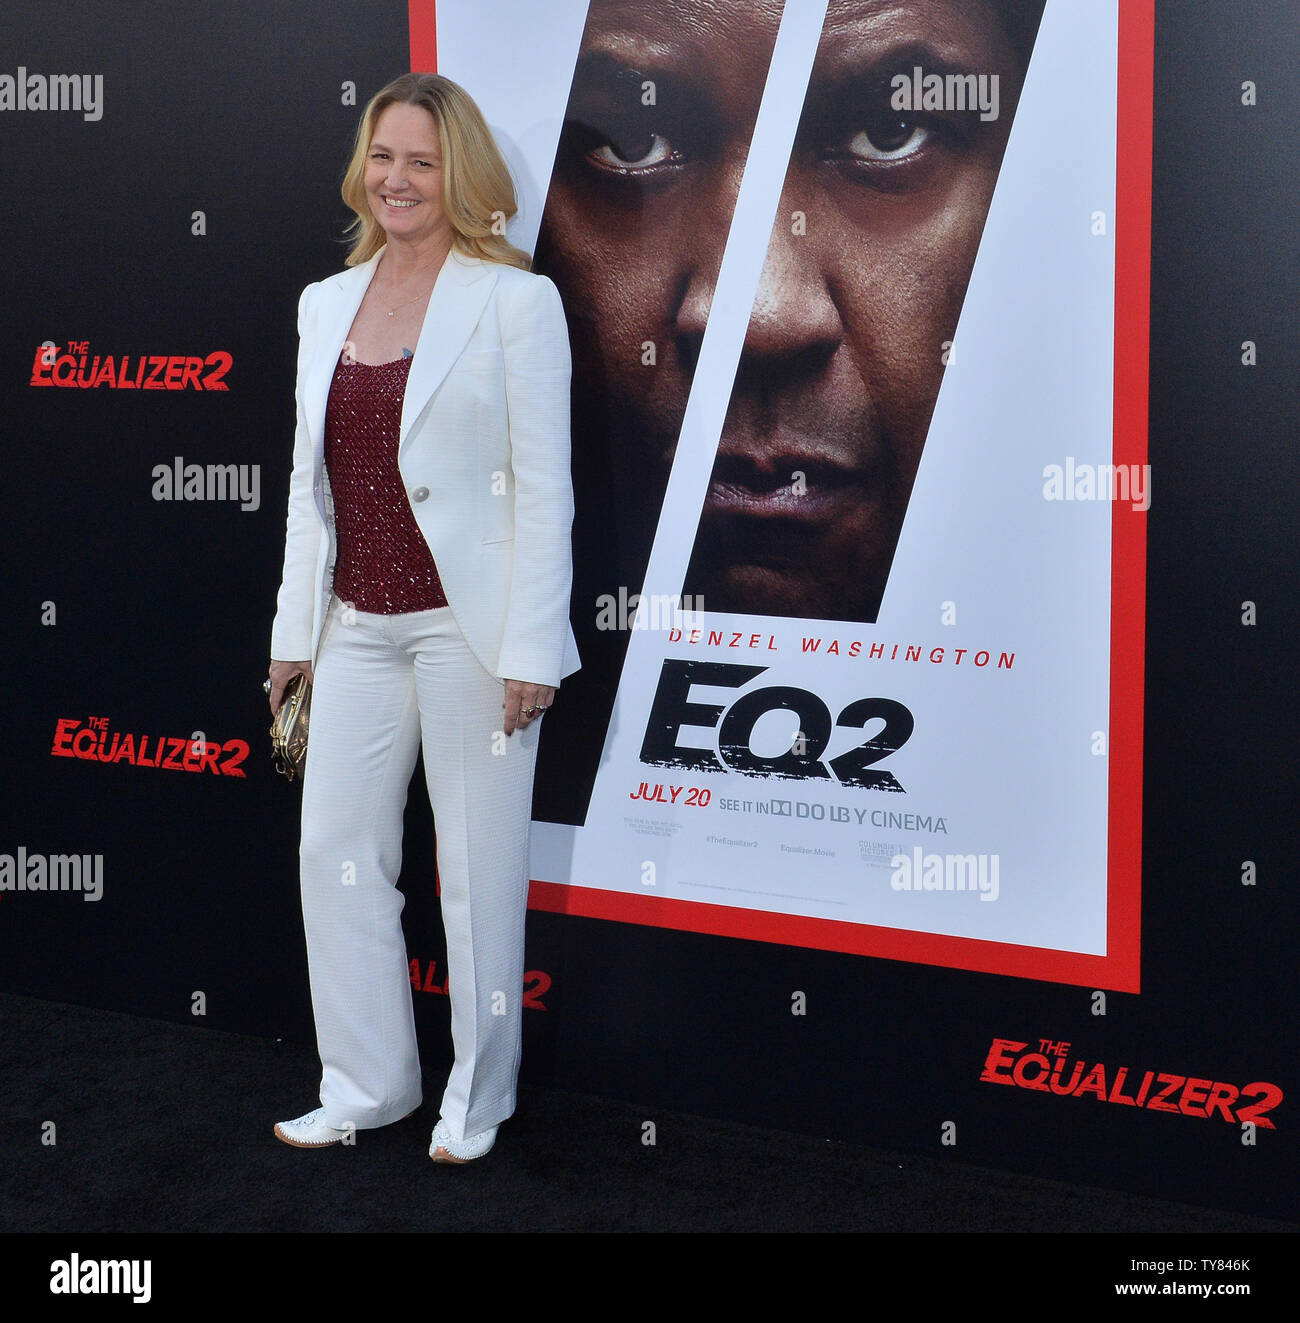 Cast member Melissa Leo arrives for the premiere of the